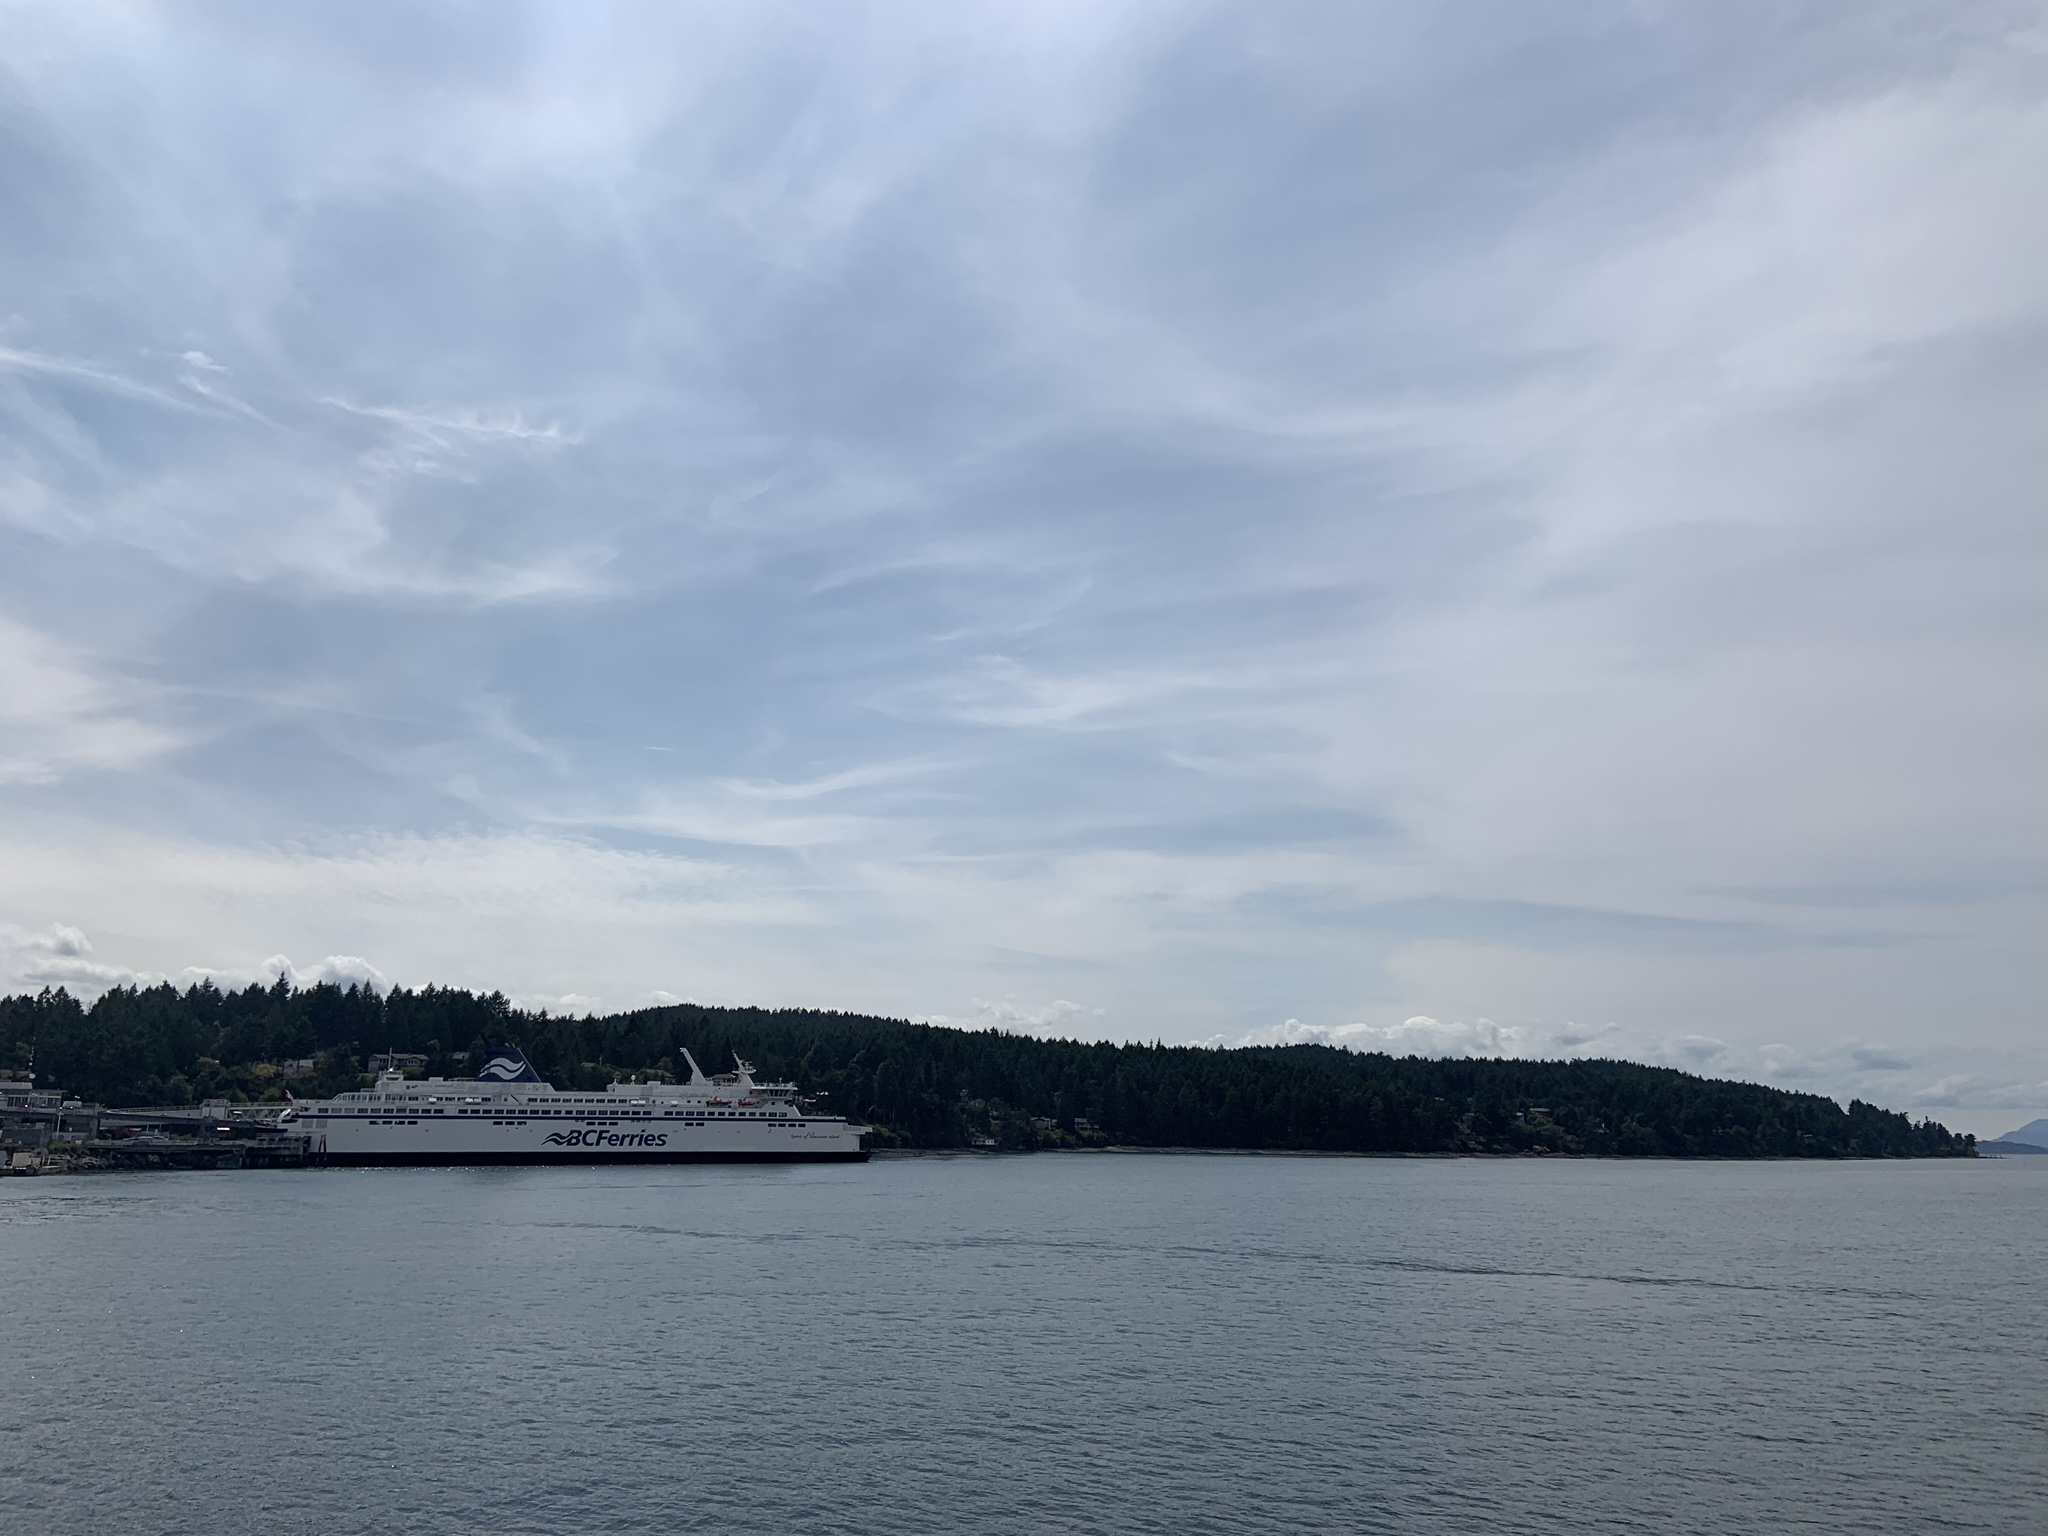 BC Ferries! Just like ours but no indoor space.